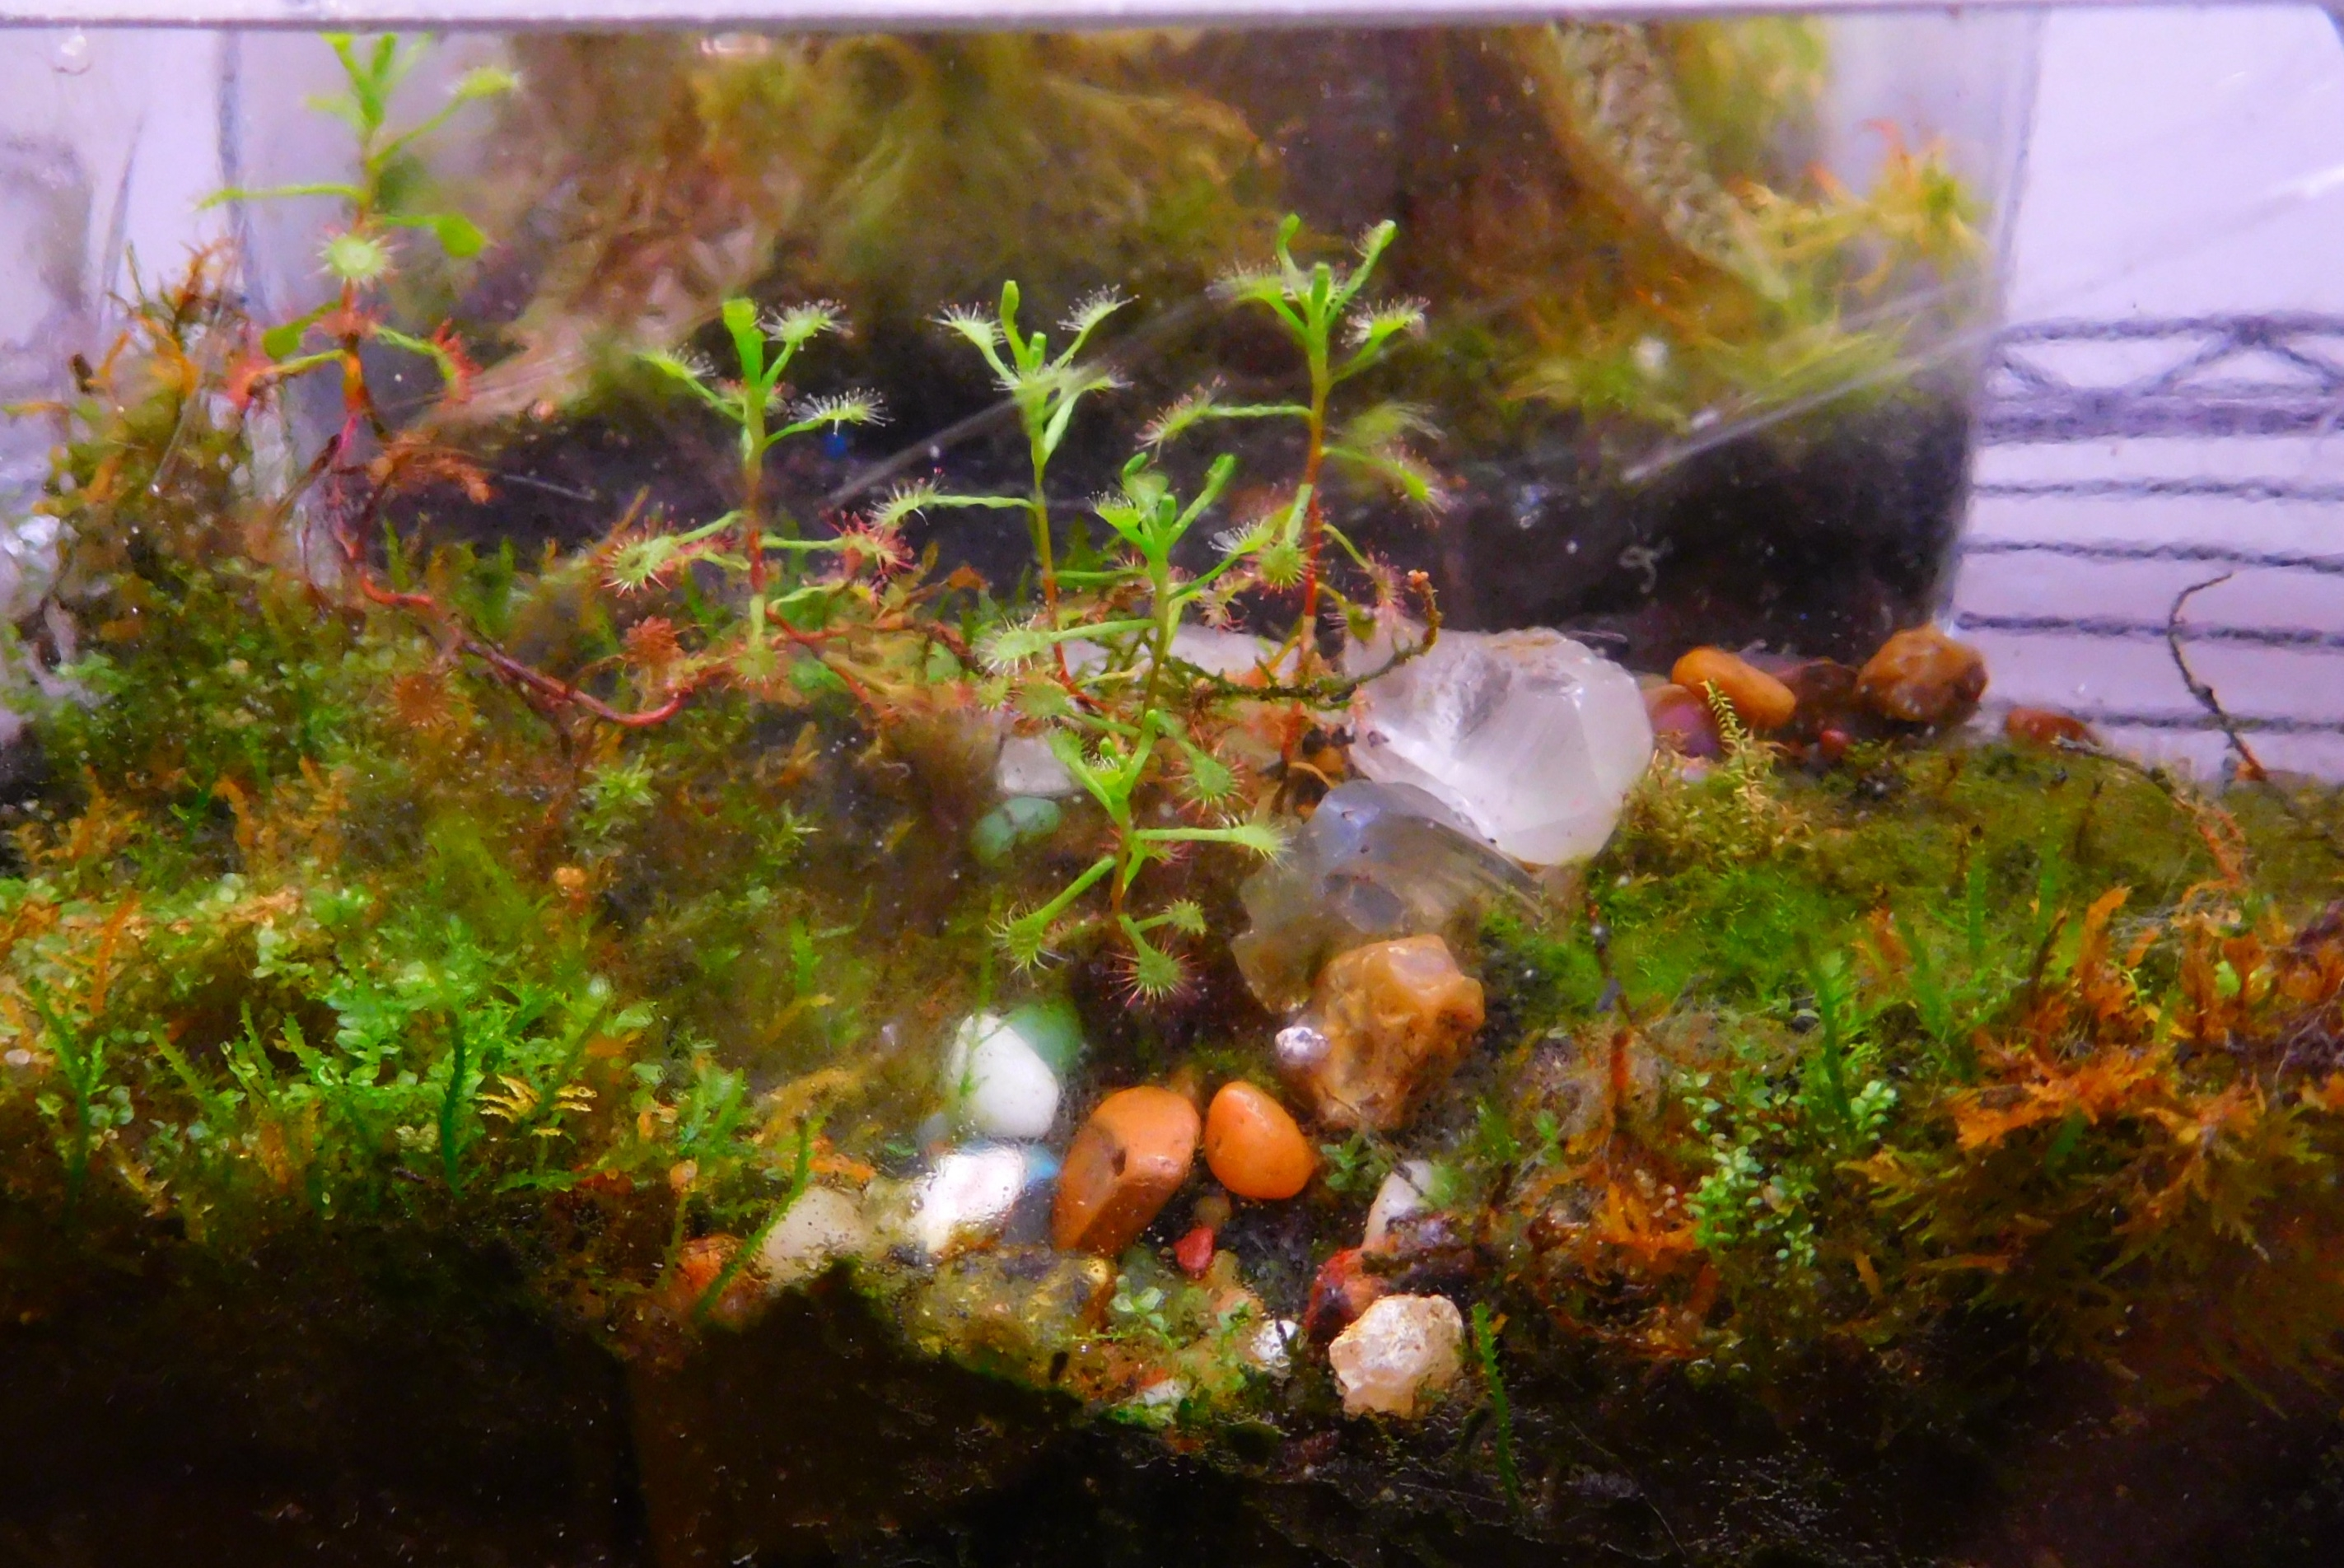 Last Week at Eclectic Eye – Terrariums for your Valentine!